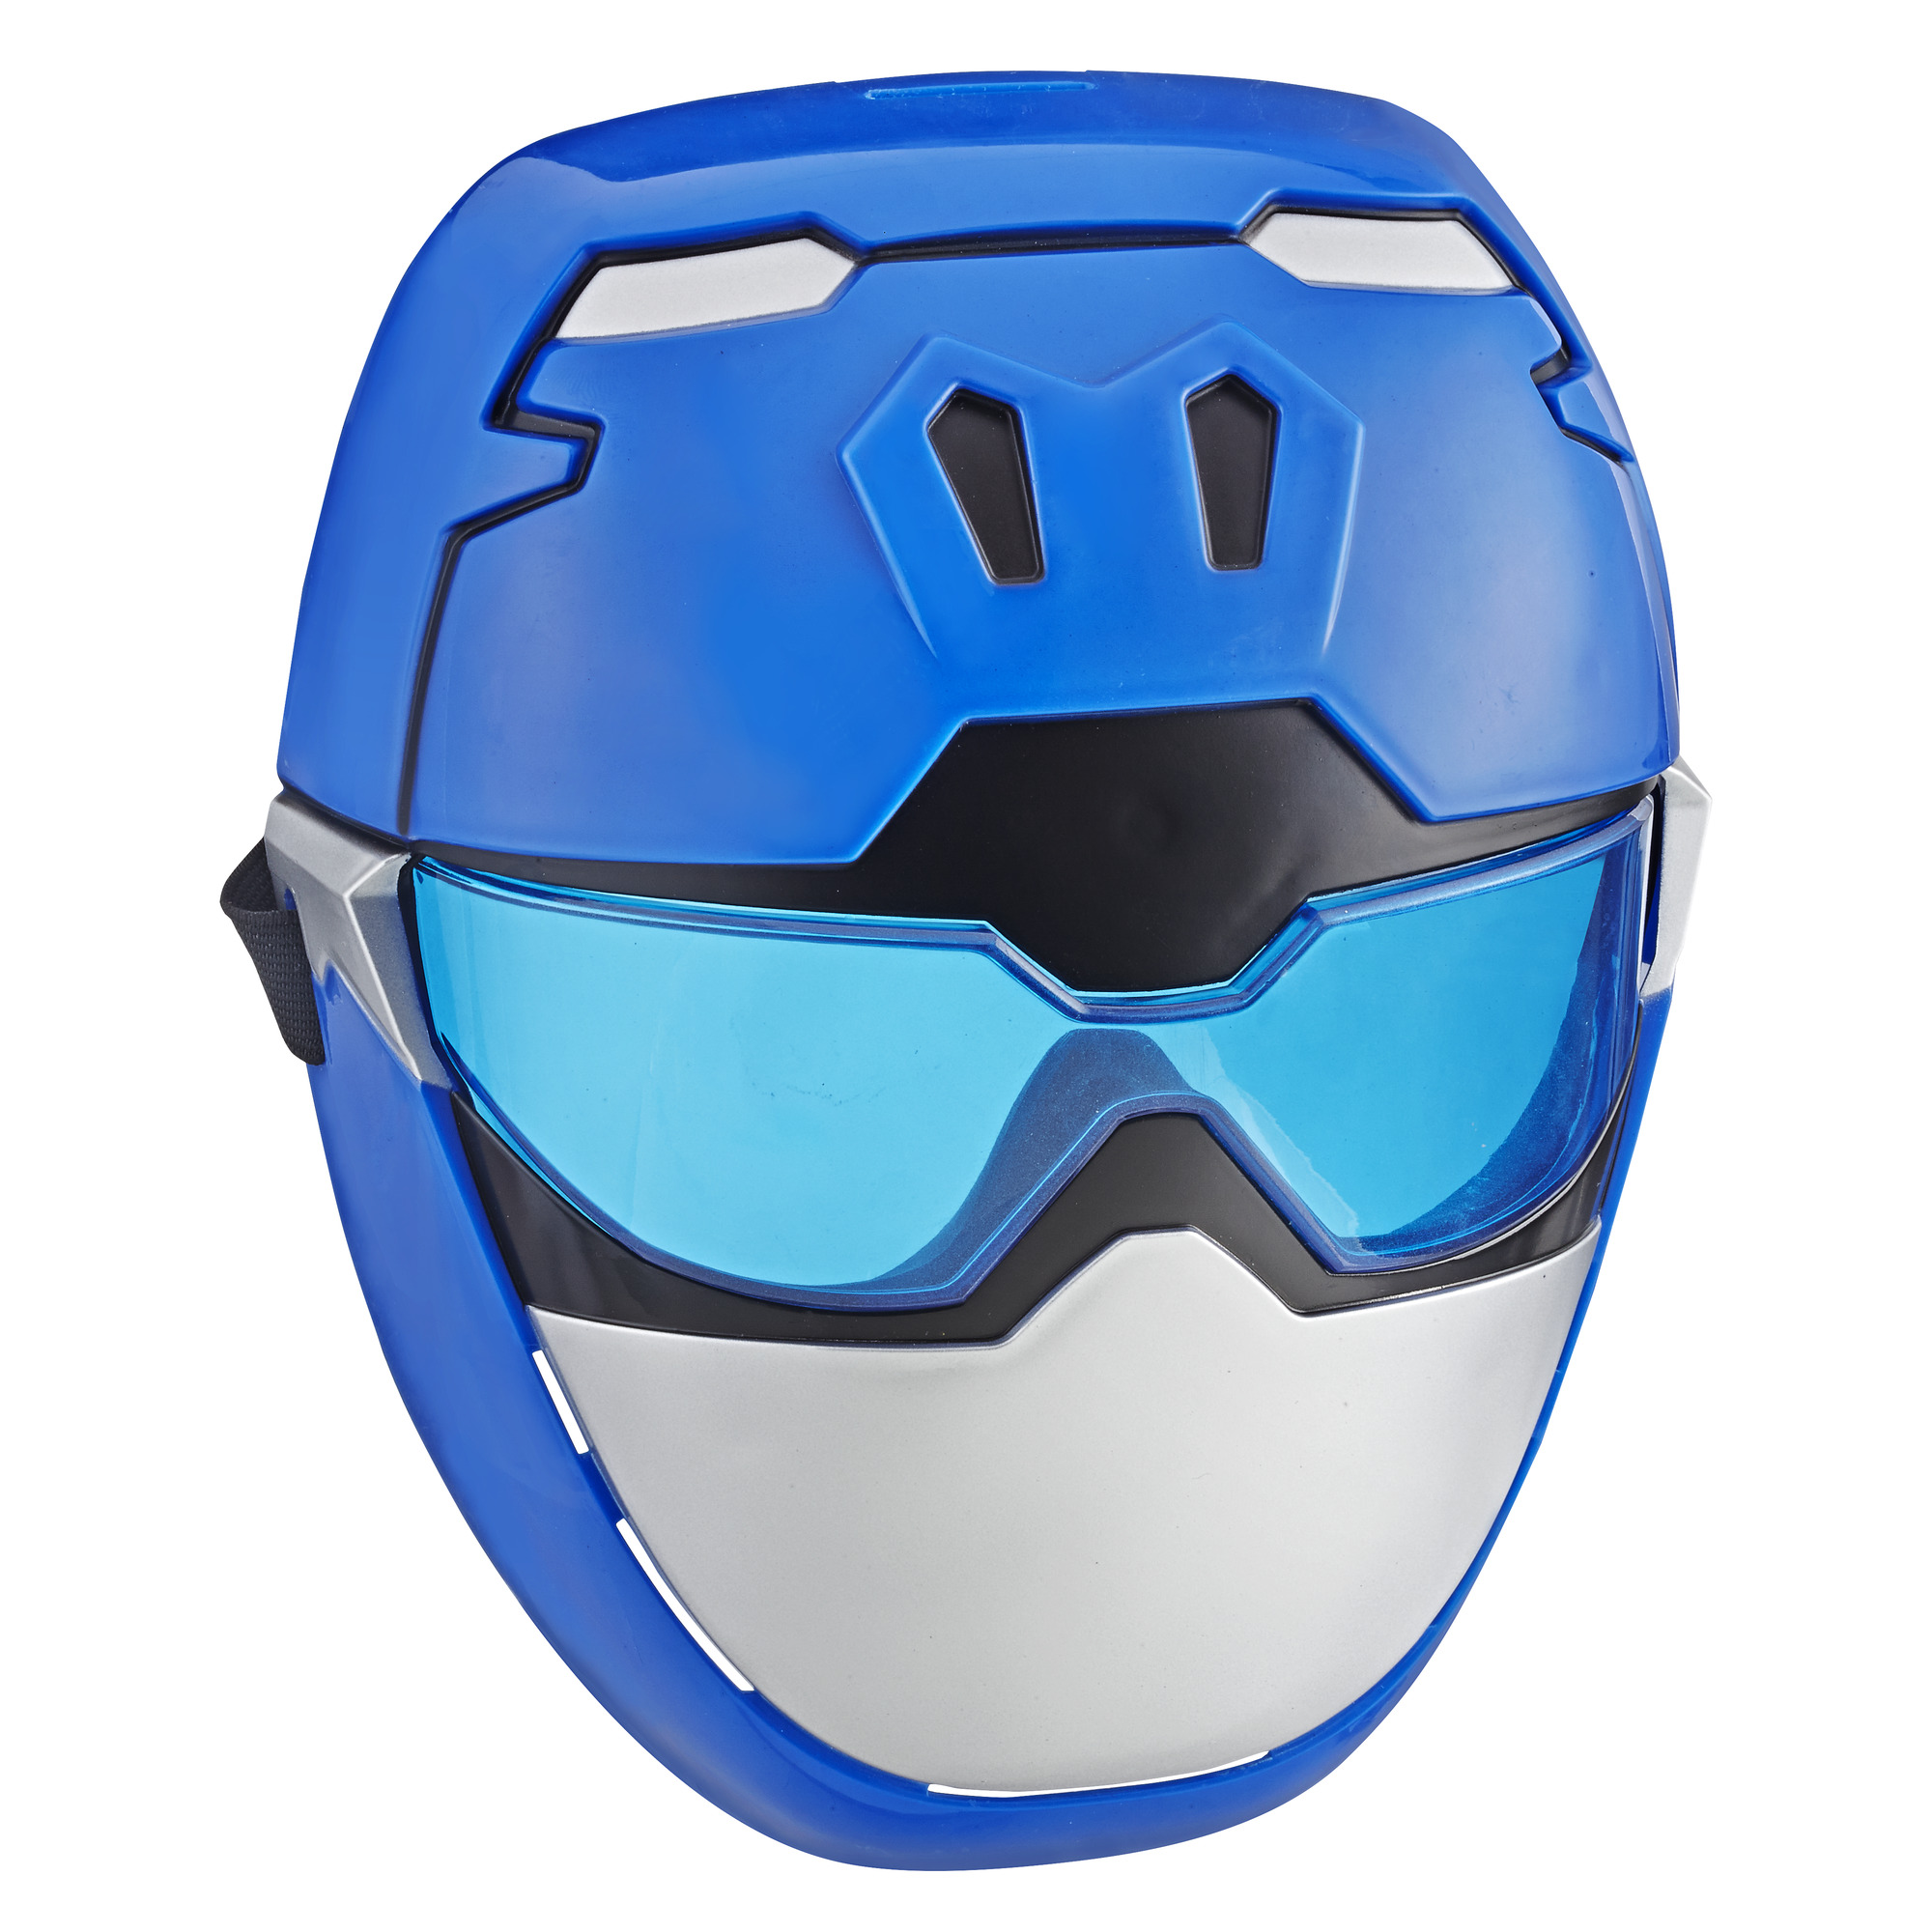 Power Rangers Beast Morphers Blue Ranger Mask for Ages 5 and up